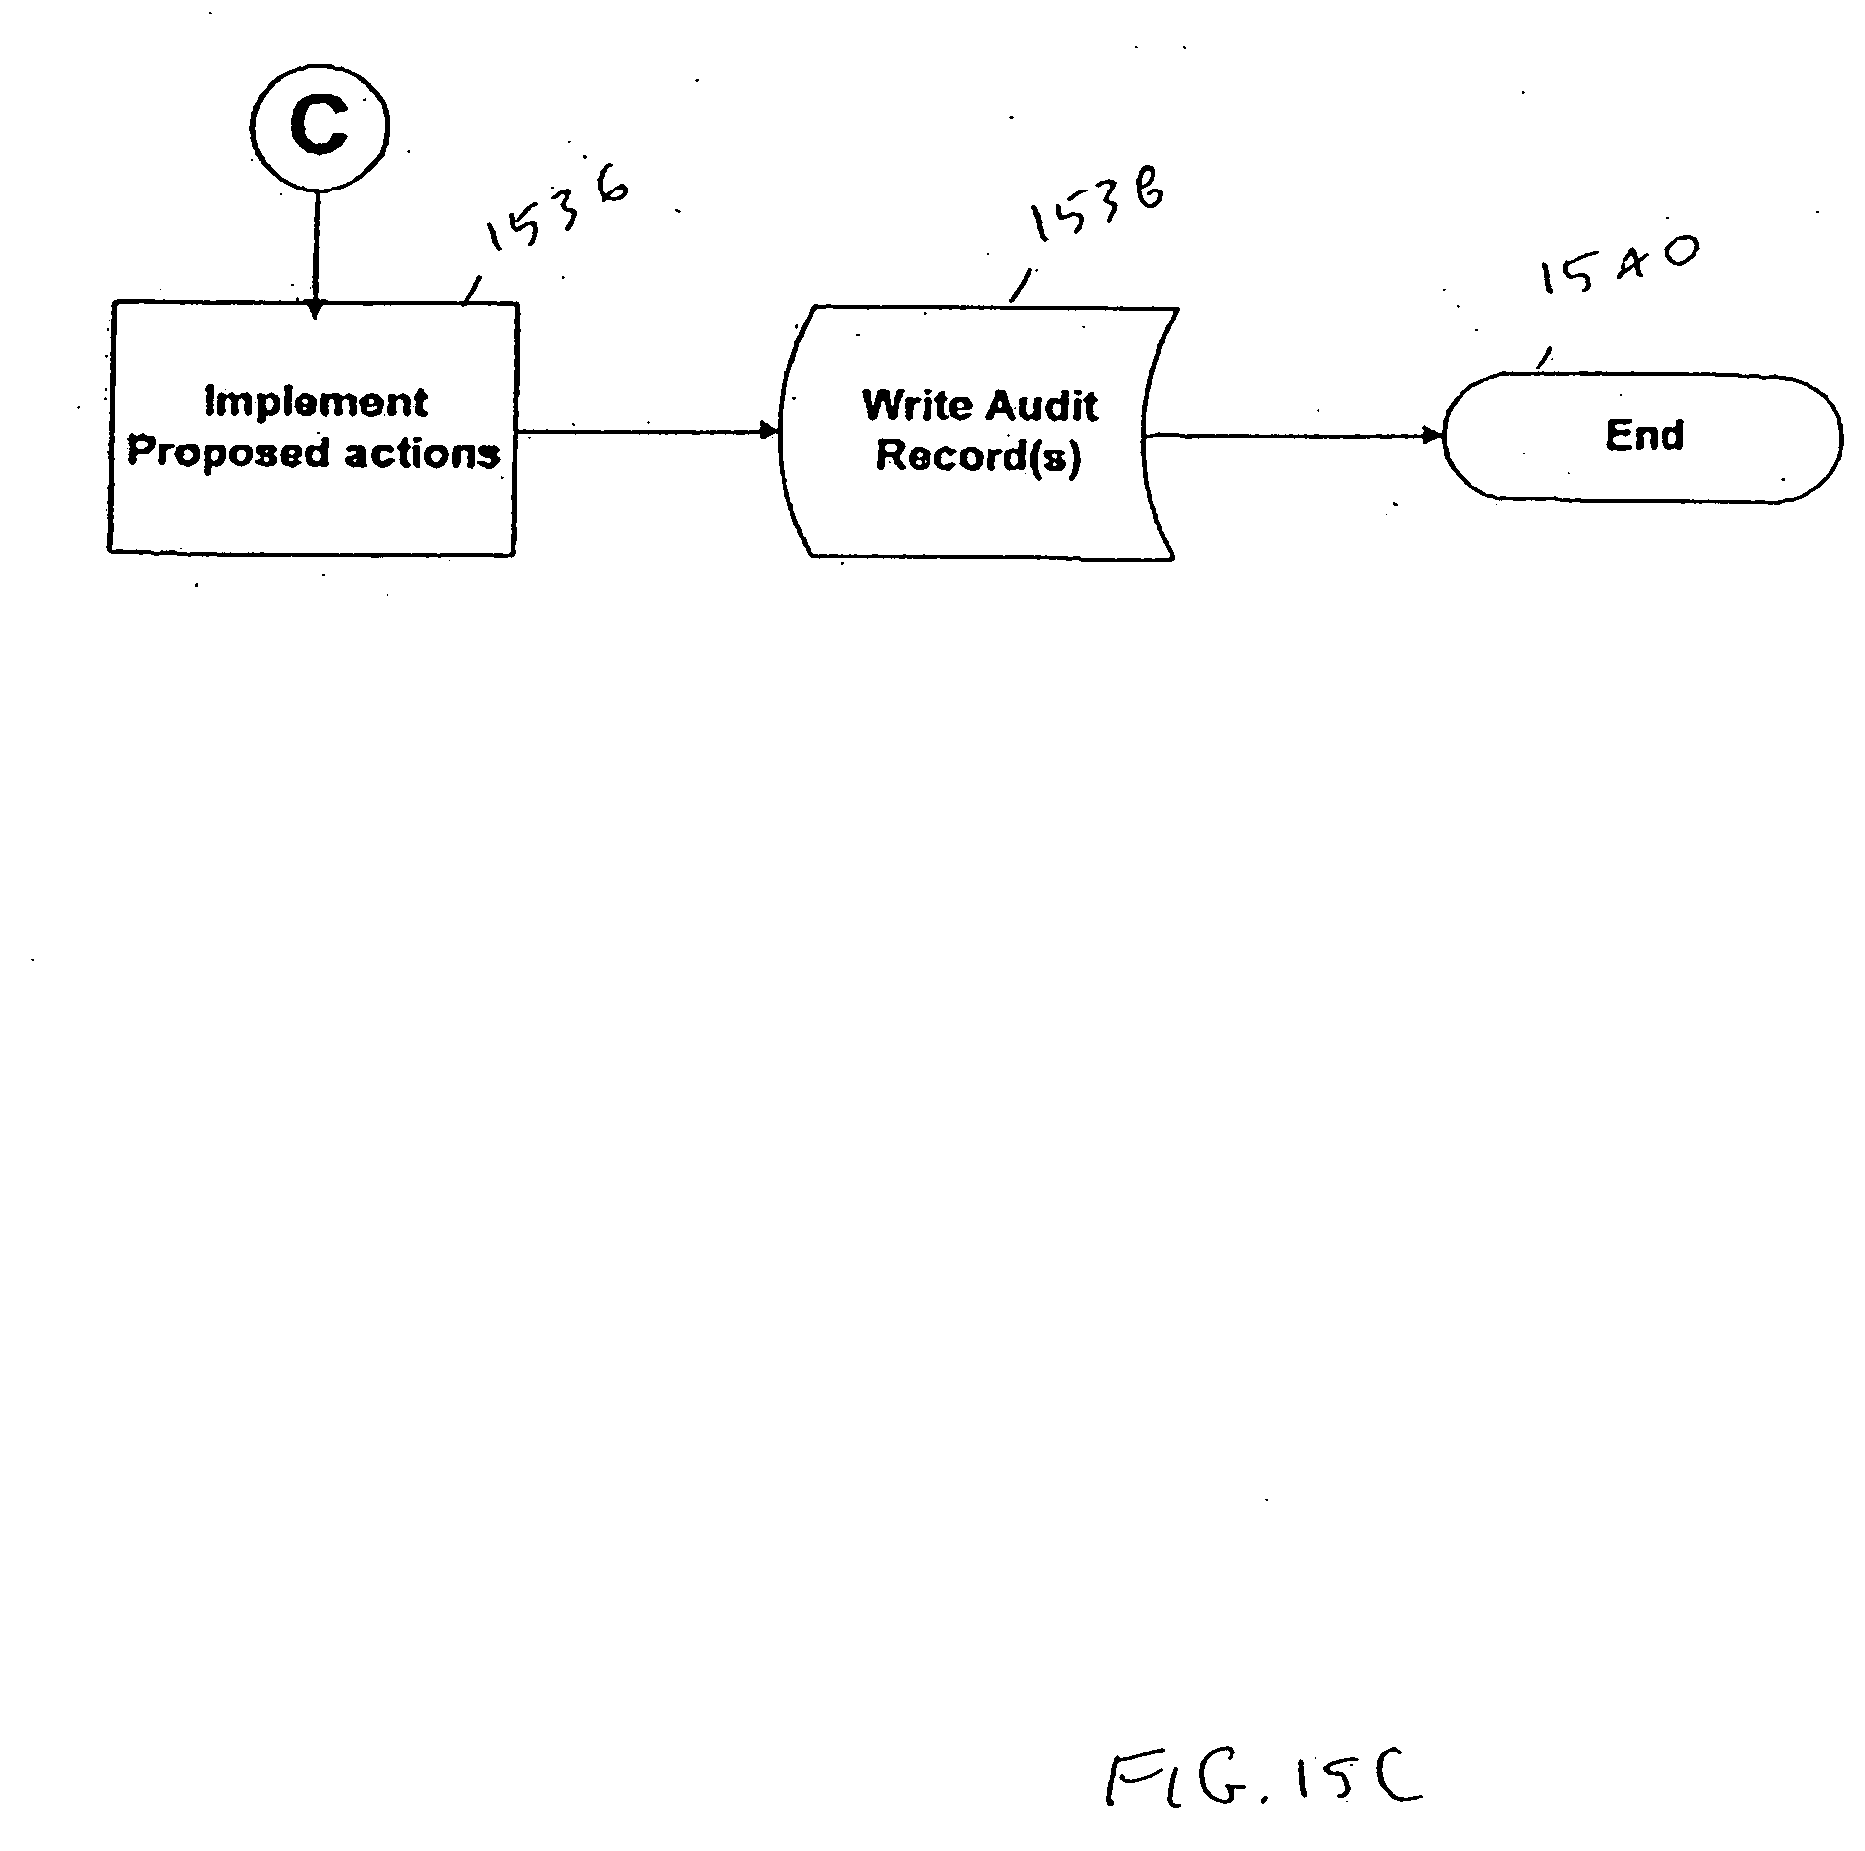 Us20060200392a1 cryptographic methods apparatus and systems for us20060200392a1 cryptographic methods apparatus and systems for storage media electronic rights management in closed and connected appliances google ccuart Image collections